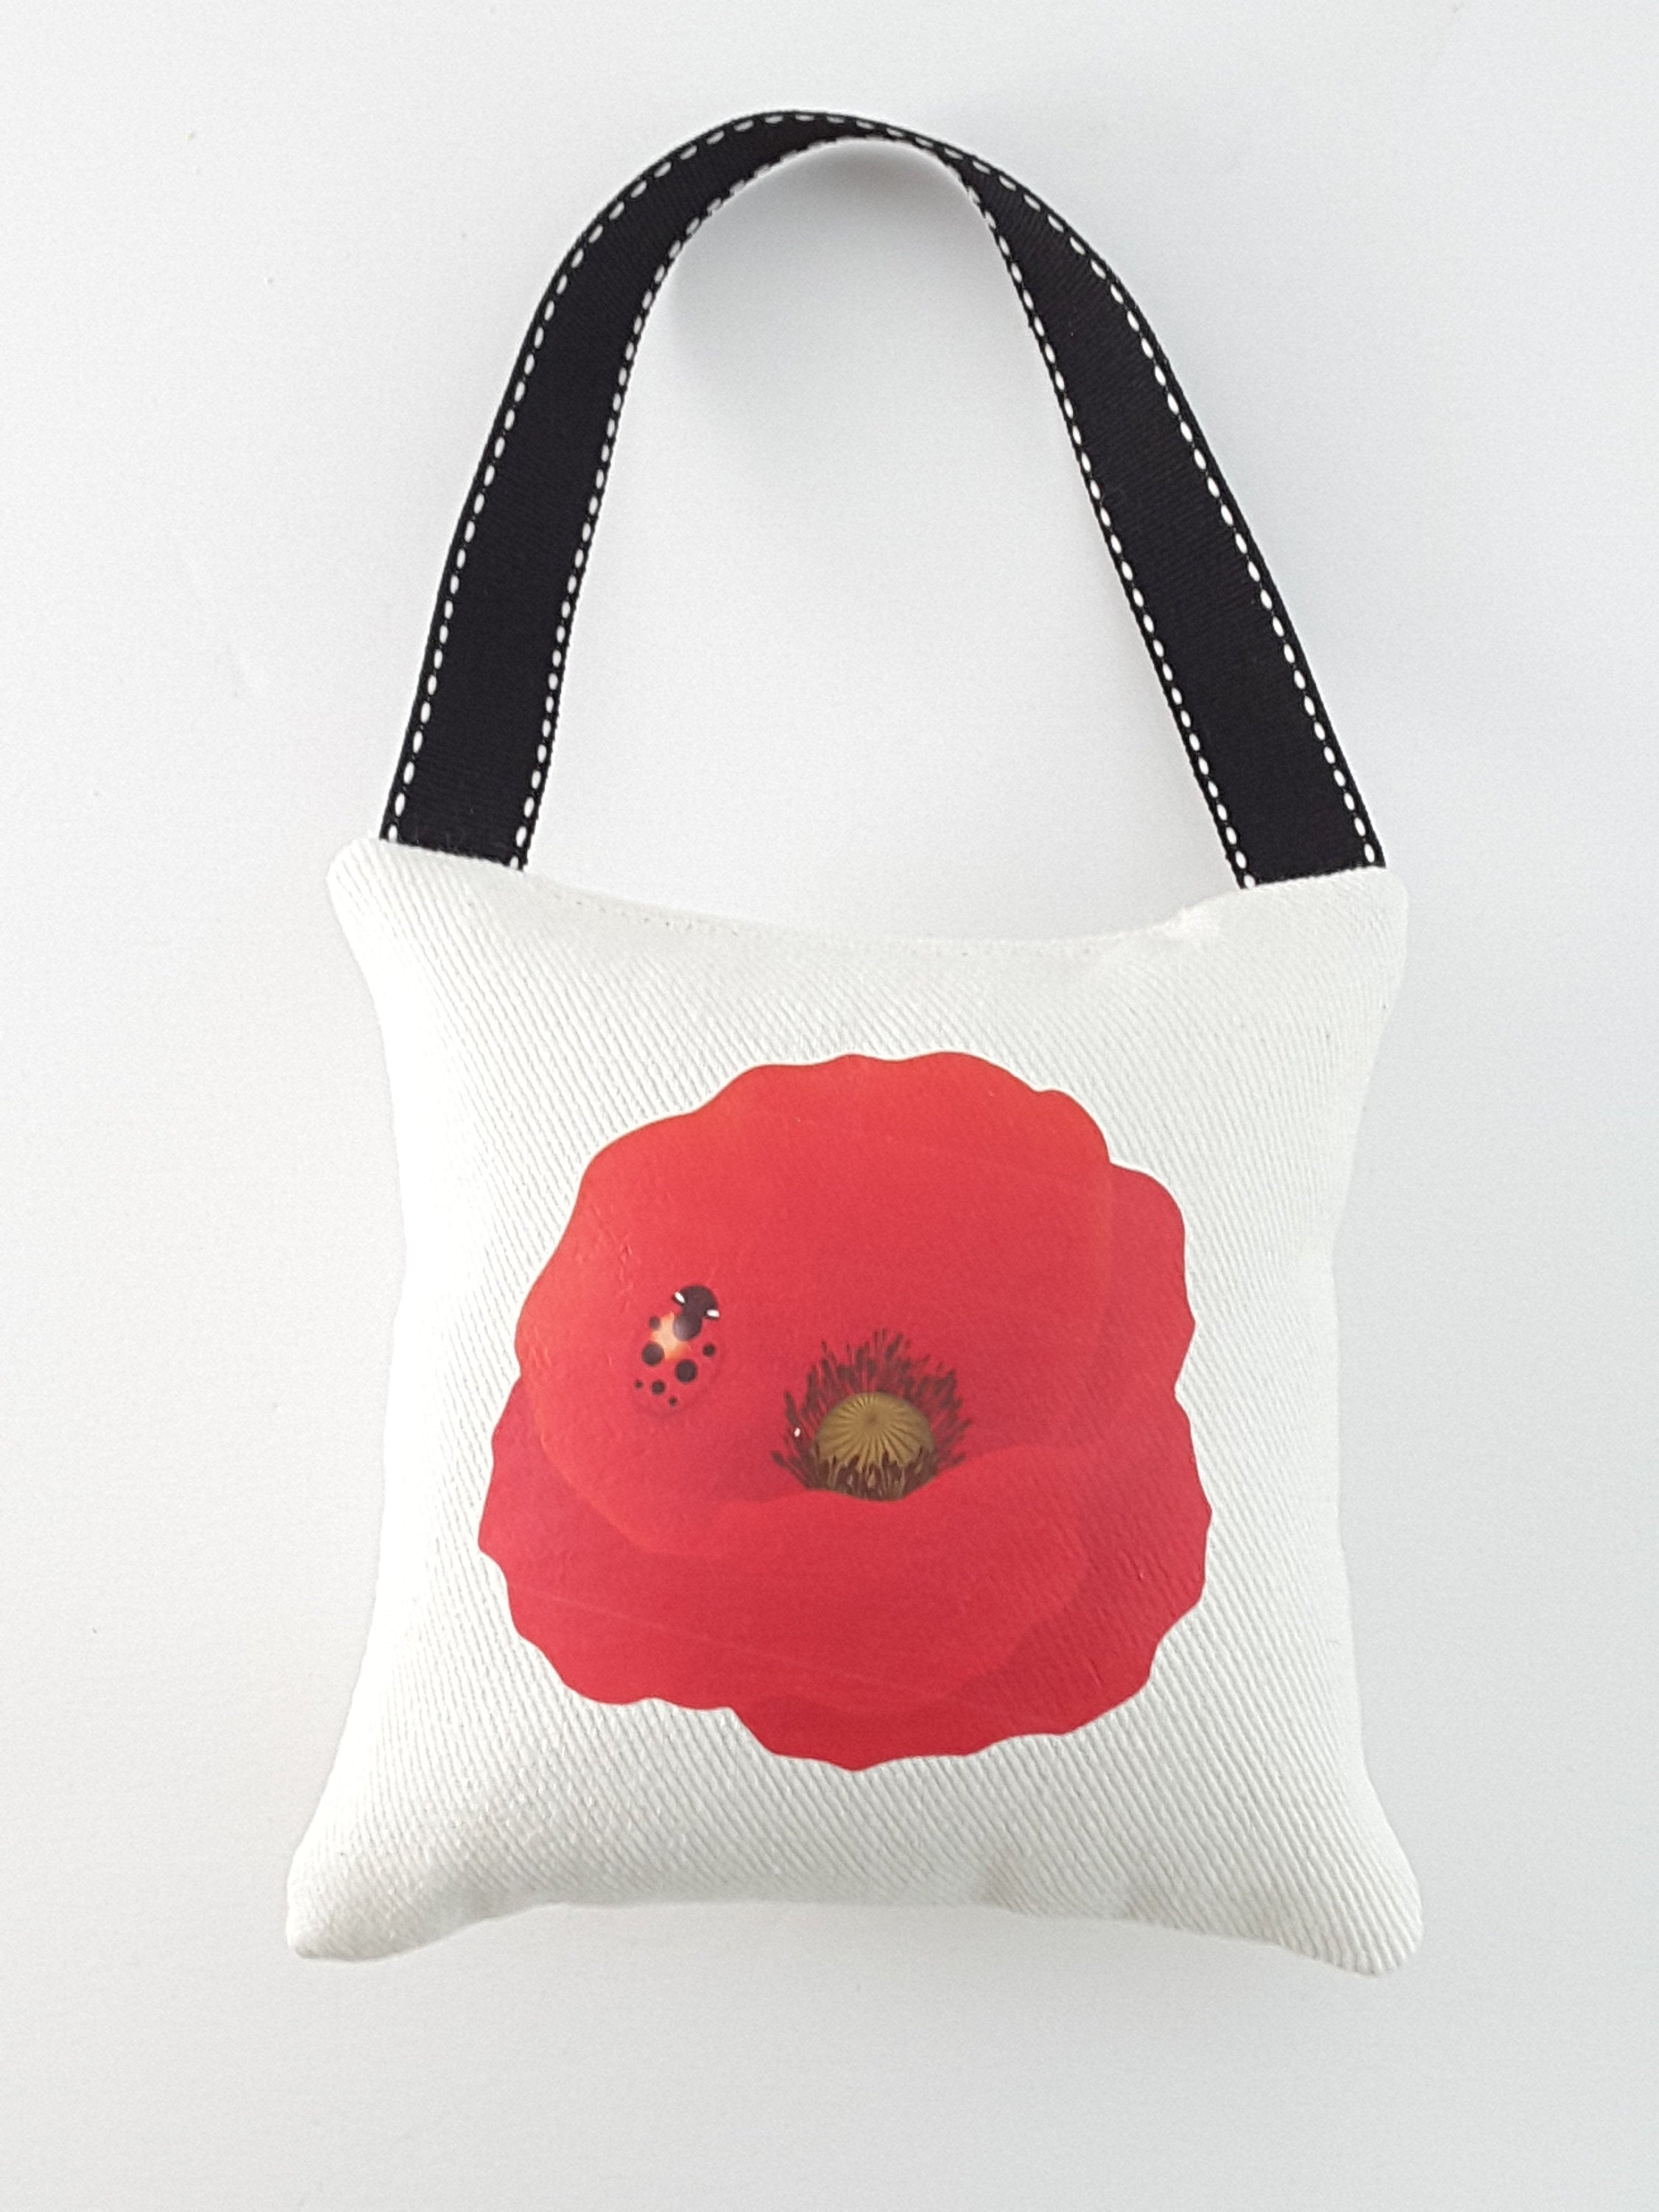 Hanging Red Poppy Pillow for Home or Office Decor - includes free shipping in USA